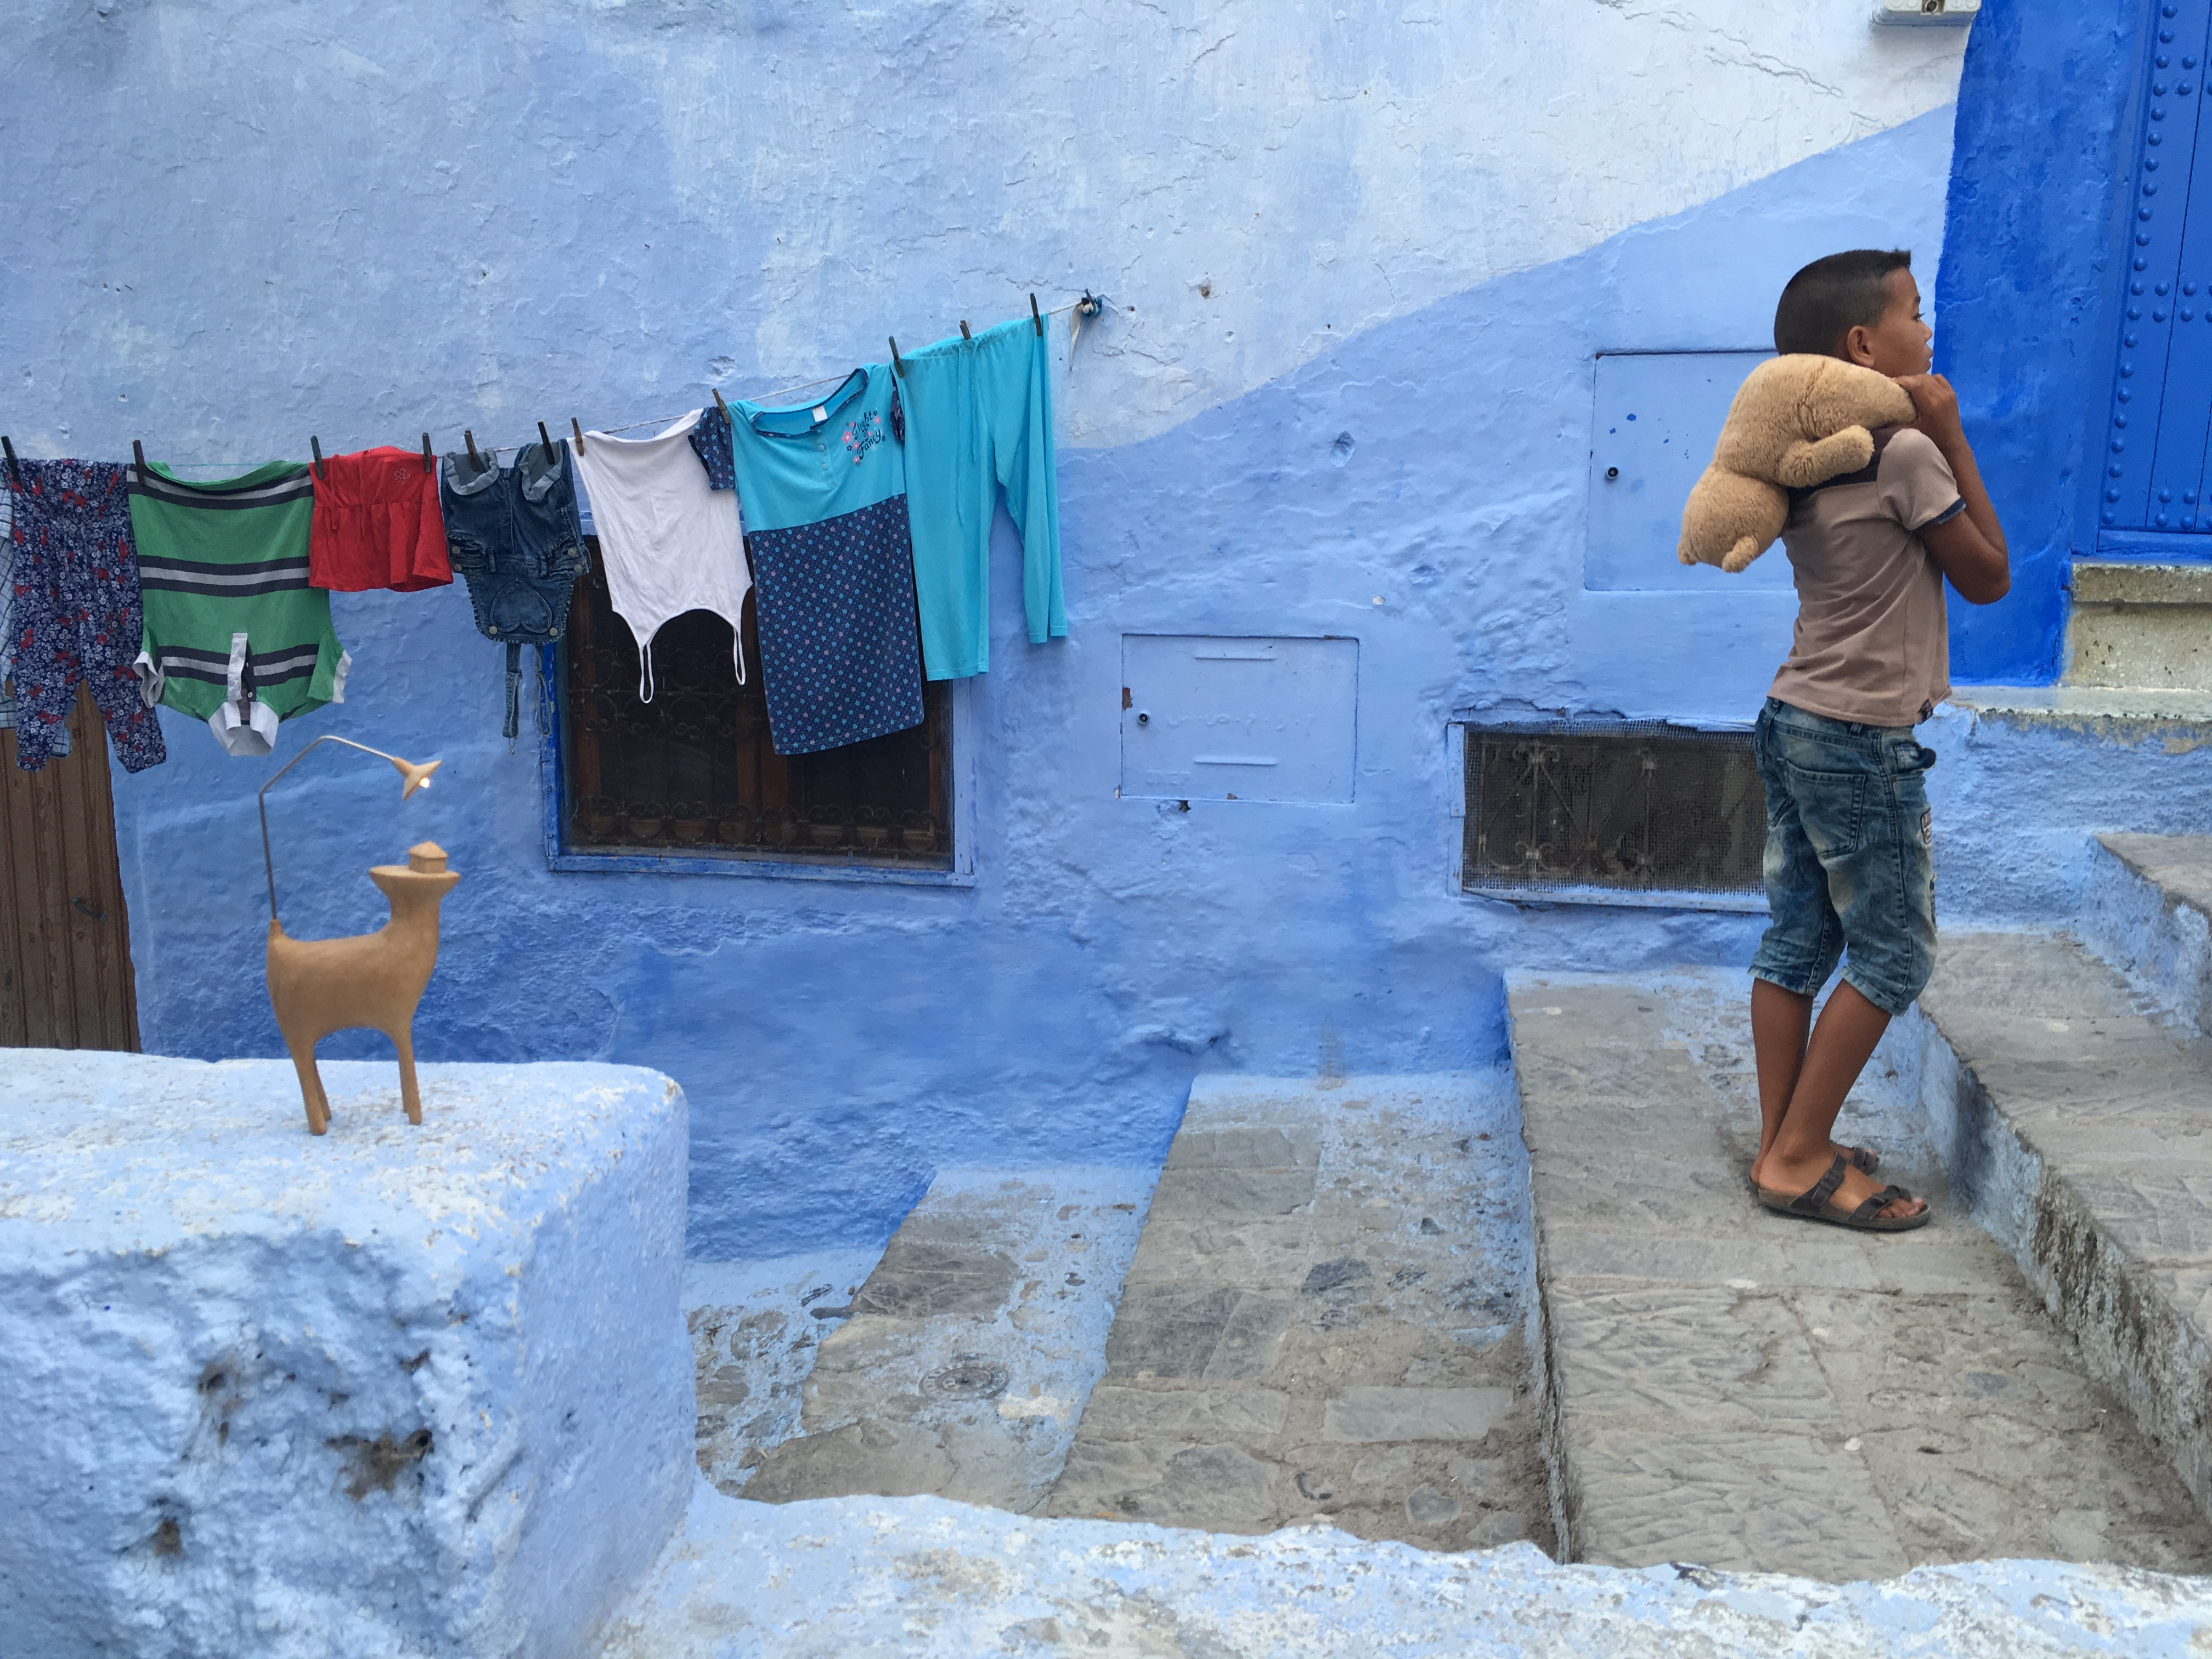 Chefchaouen, Morocco,2017